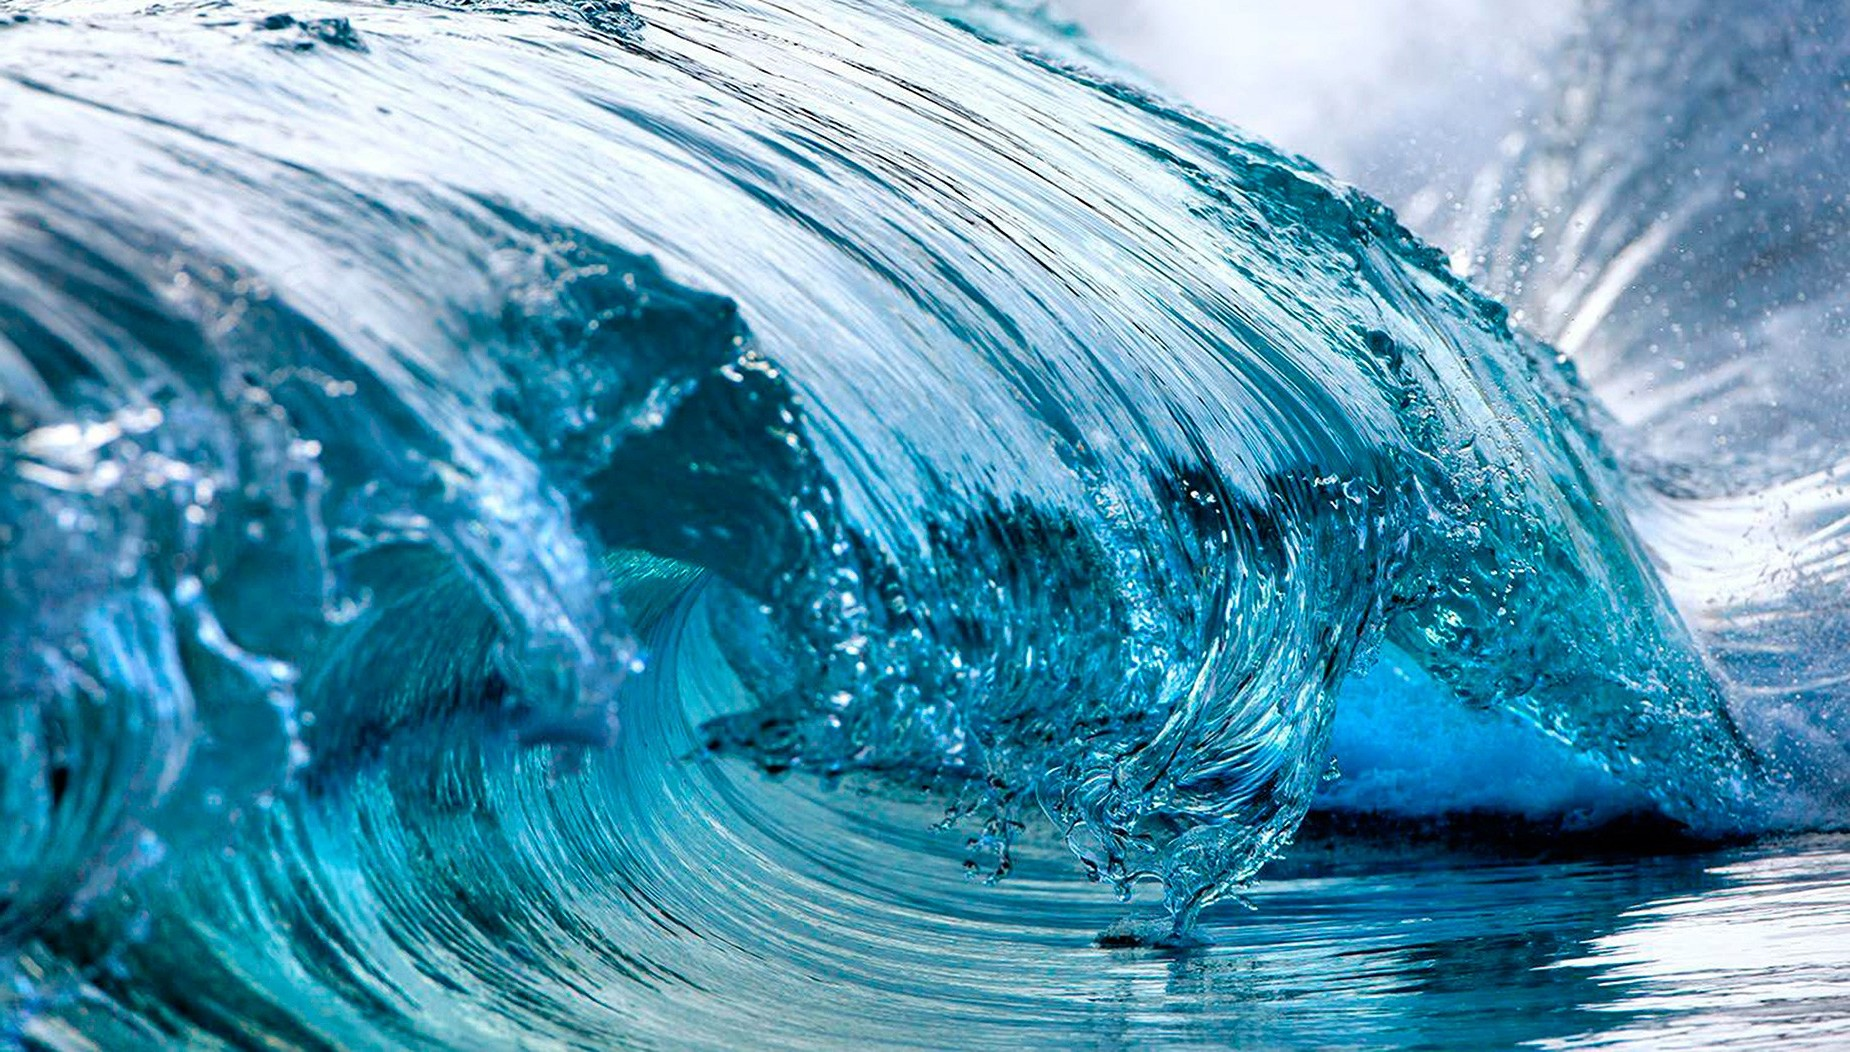 waves Nature Sea Water Water Drops Wallpapers HD 1850x1052